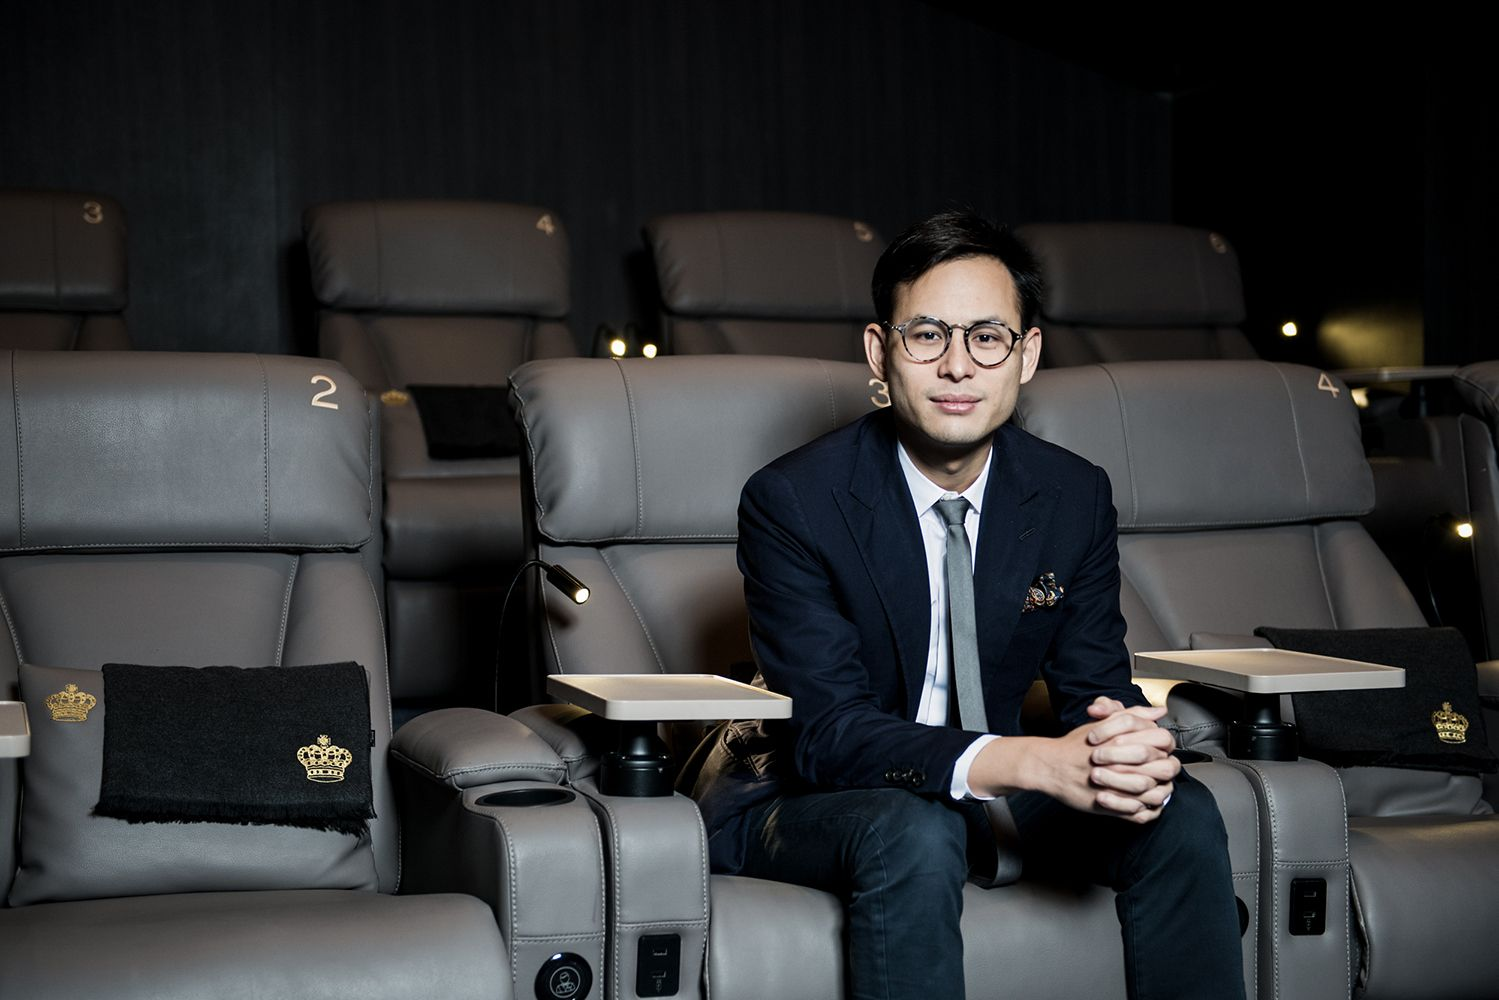 This Man Wants To Upgrade Your Cinema Experience